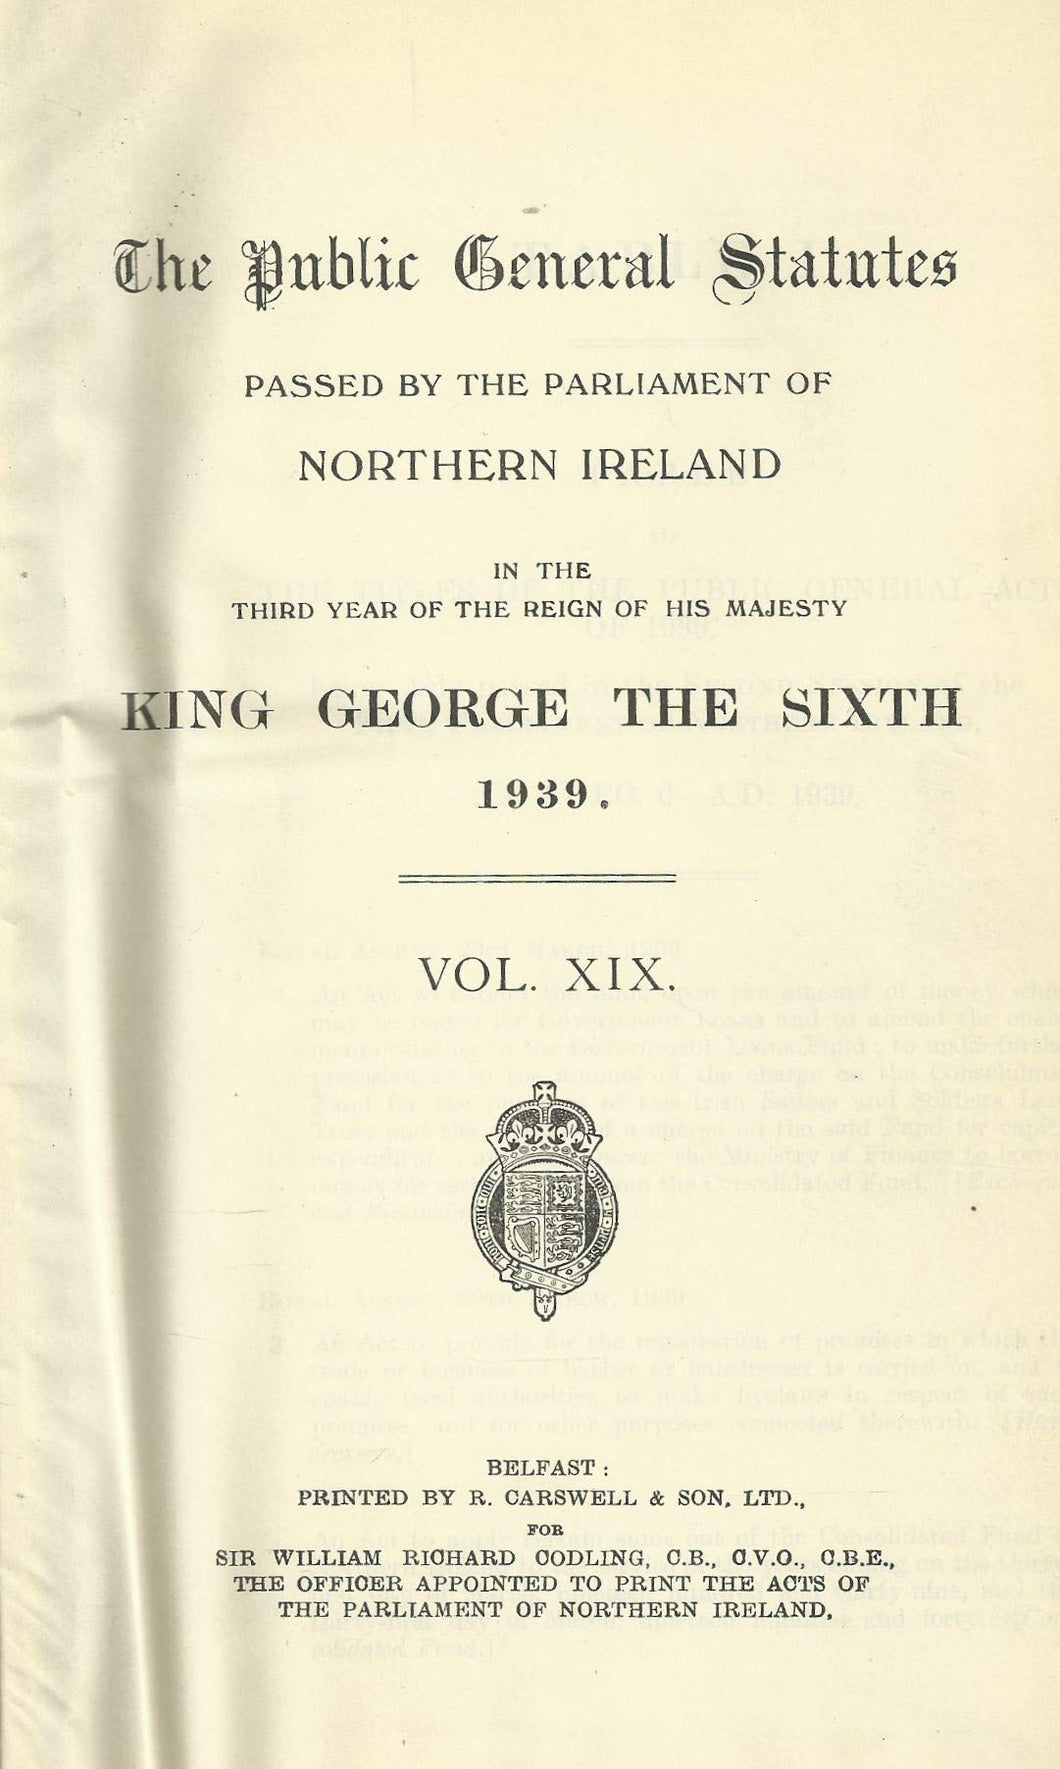 Northern Ireland Public General Acts, 1939-40 (Volume XIX - 19): The Public General Statutes Passed by the Parliament of Northern Ireland